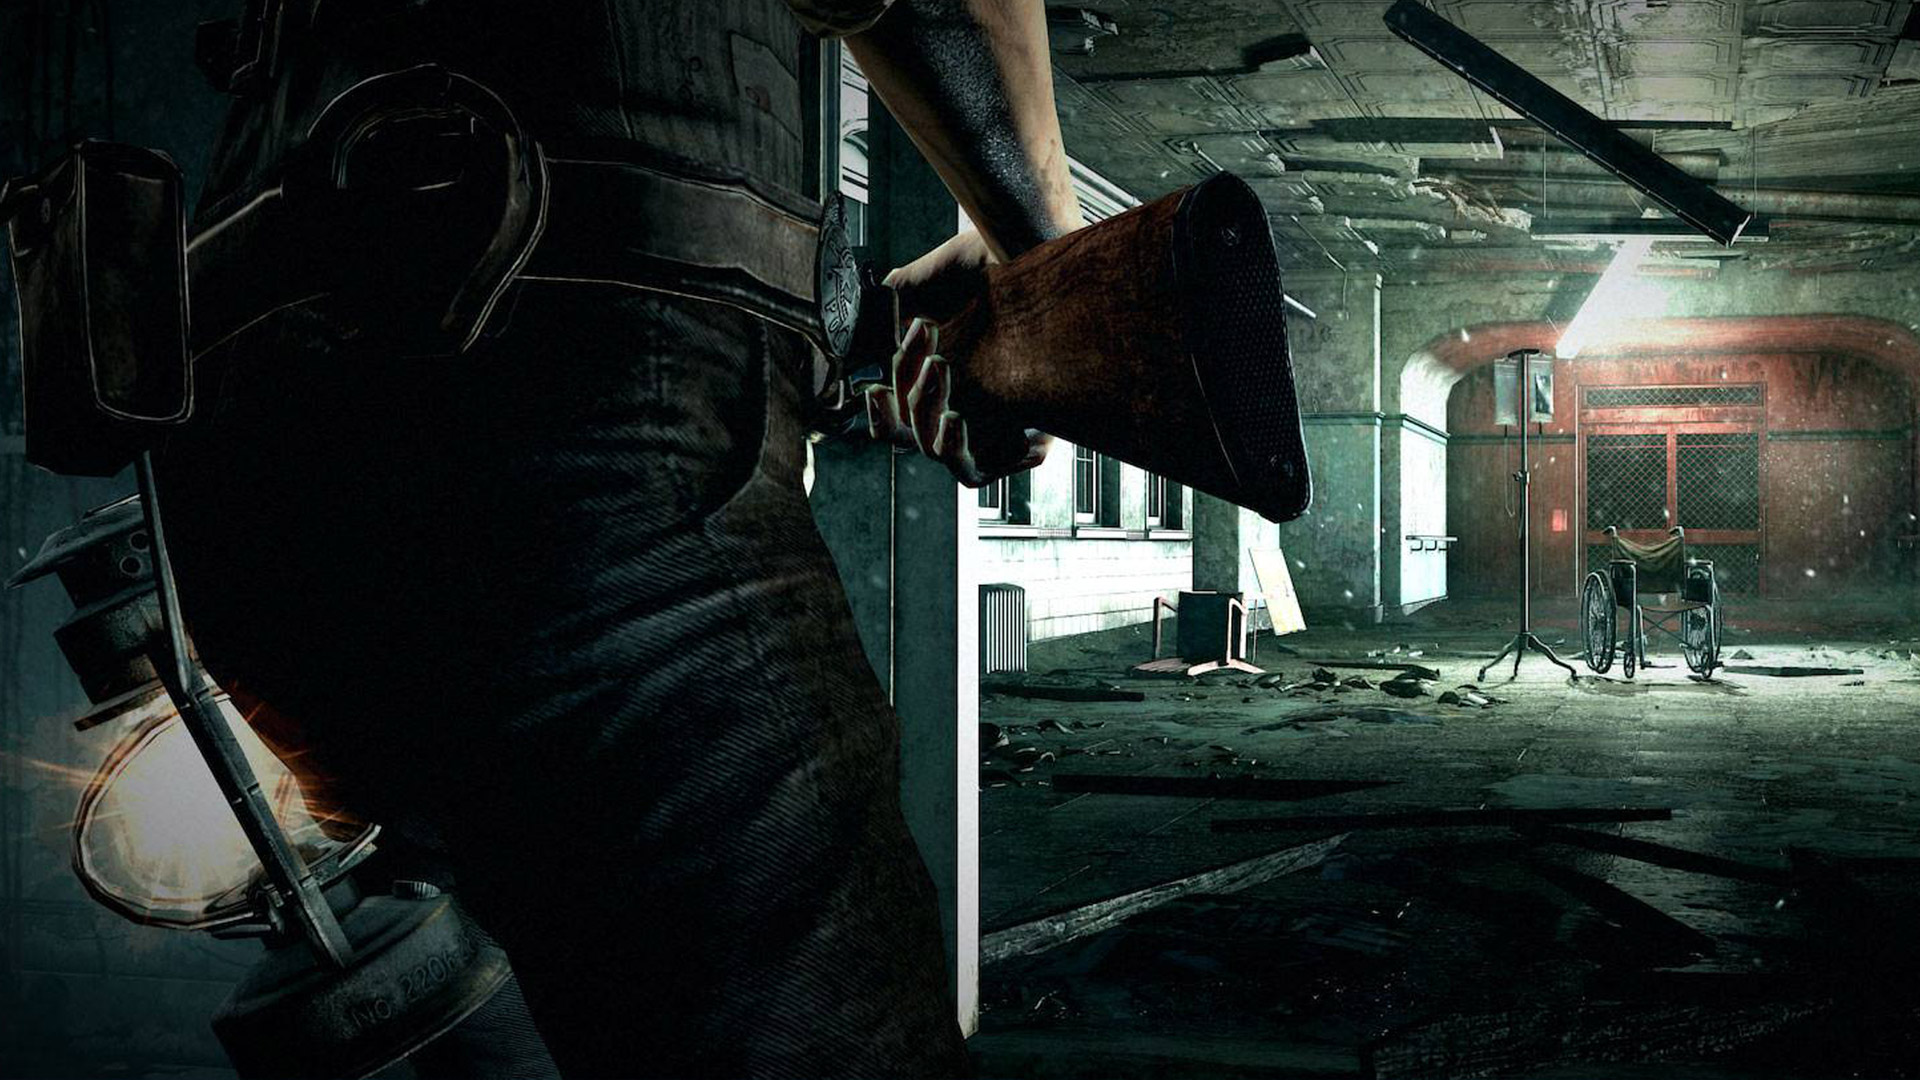 The Evil Within Wallpapers Or Desktop Backgrounds: The Evil Within Wallpaper 12